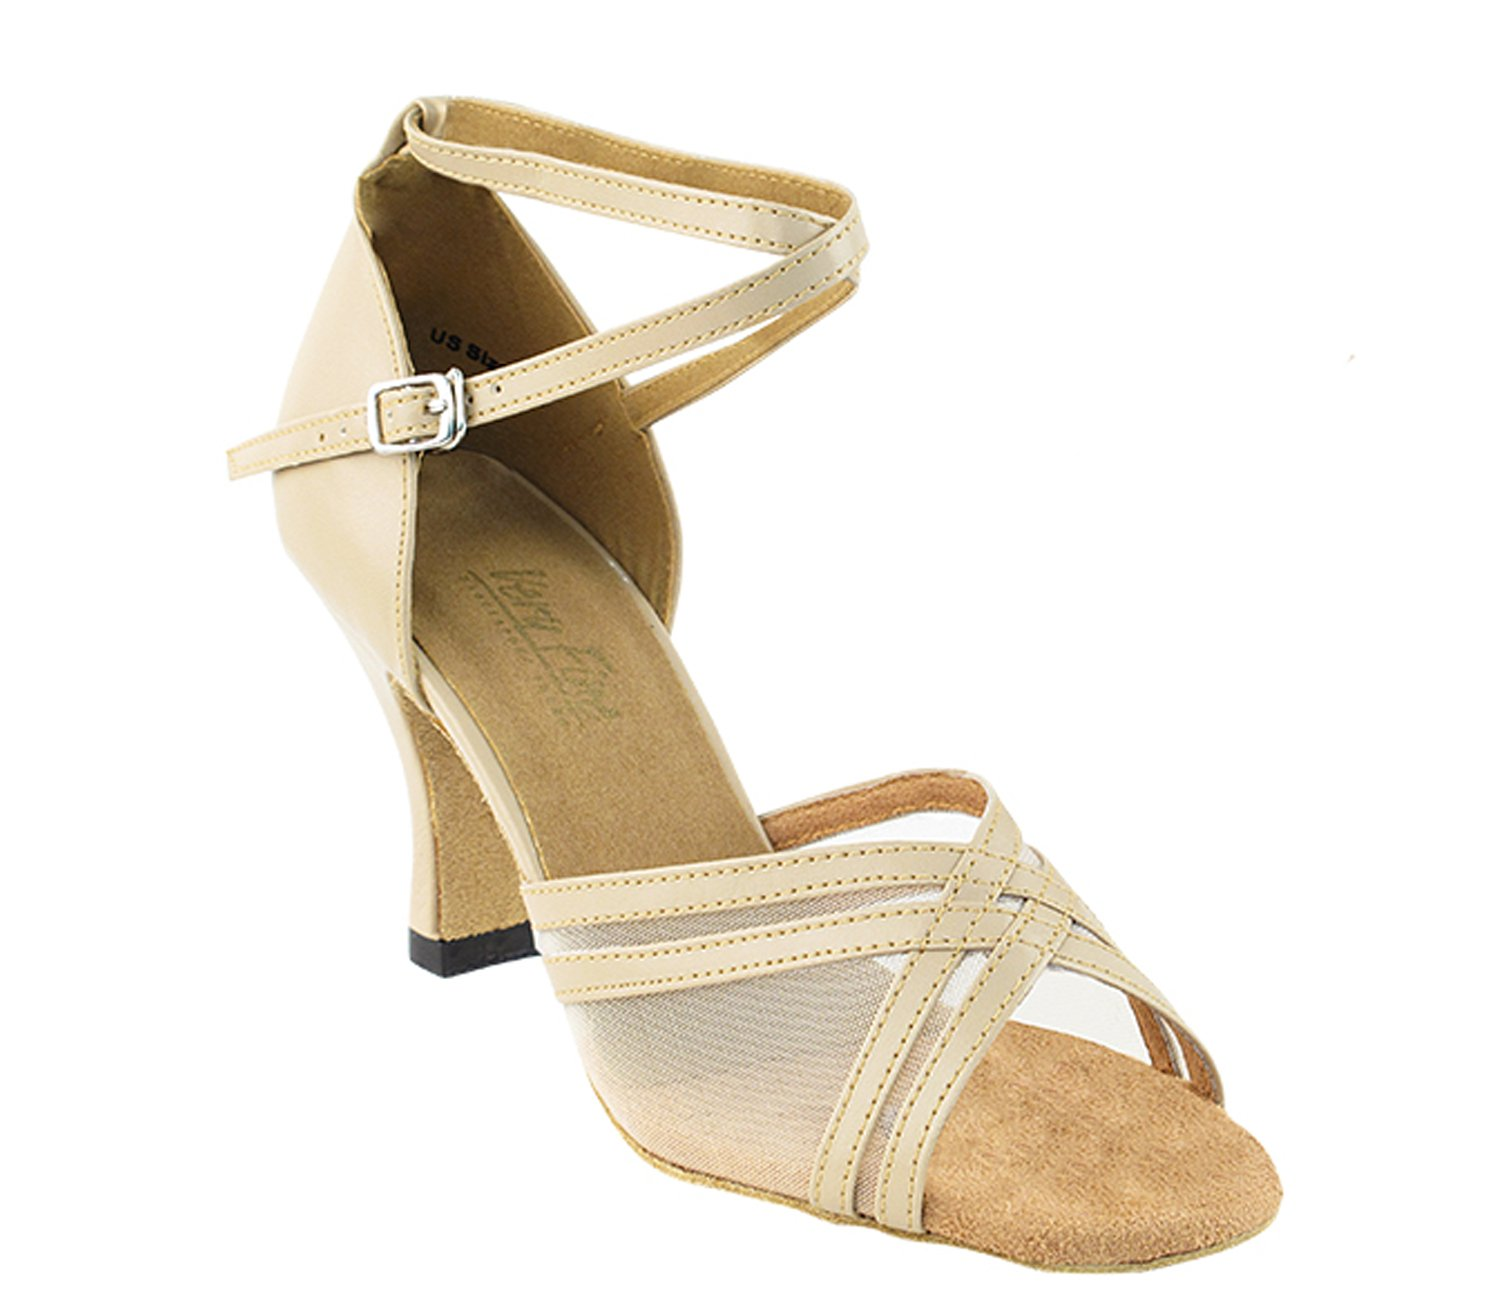 Very Fine Ladies Women Ballroom Dance Shoes EK5017 Tan Leather & Flesh Mesh 2.5'' Heel (7.5M)